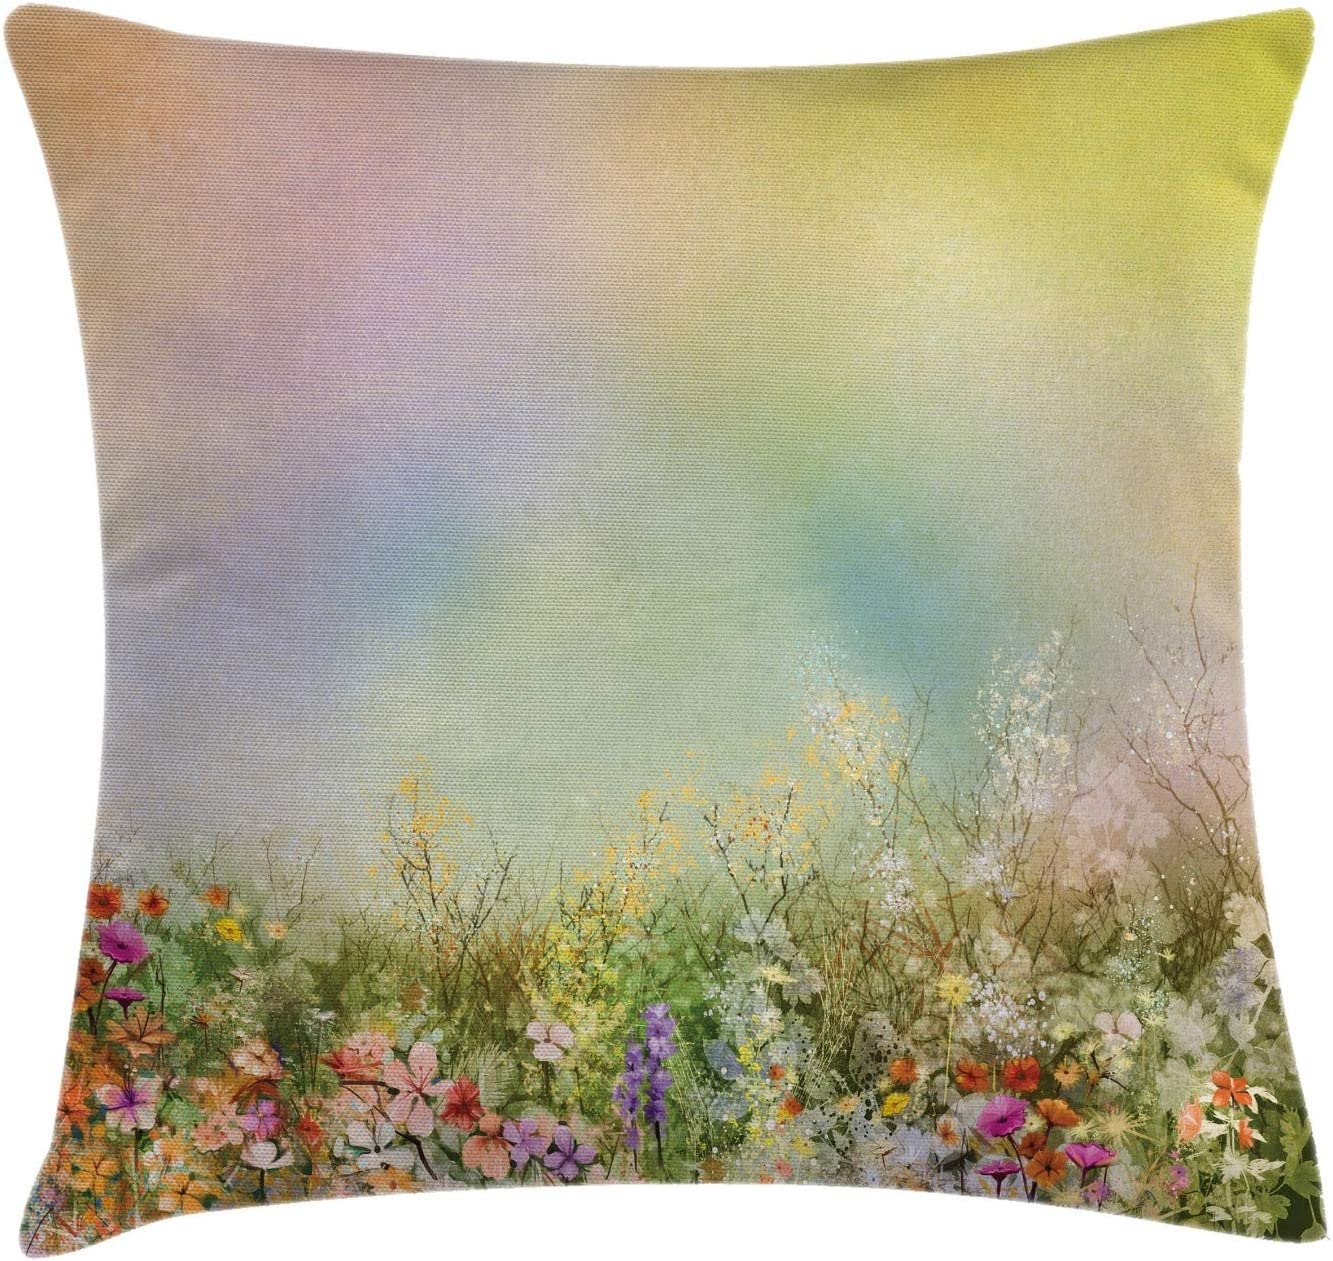 Ambesonne Flower Throw Pillow Cushion Cover Cosmos Daisy Cornflower Wildflower Dandelion In Floral Meadow Drawing Of Nature Decorative Square Accent Pillow Case 18 X 18 Pastel Colors Home Kitchen